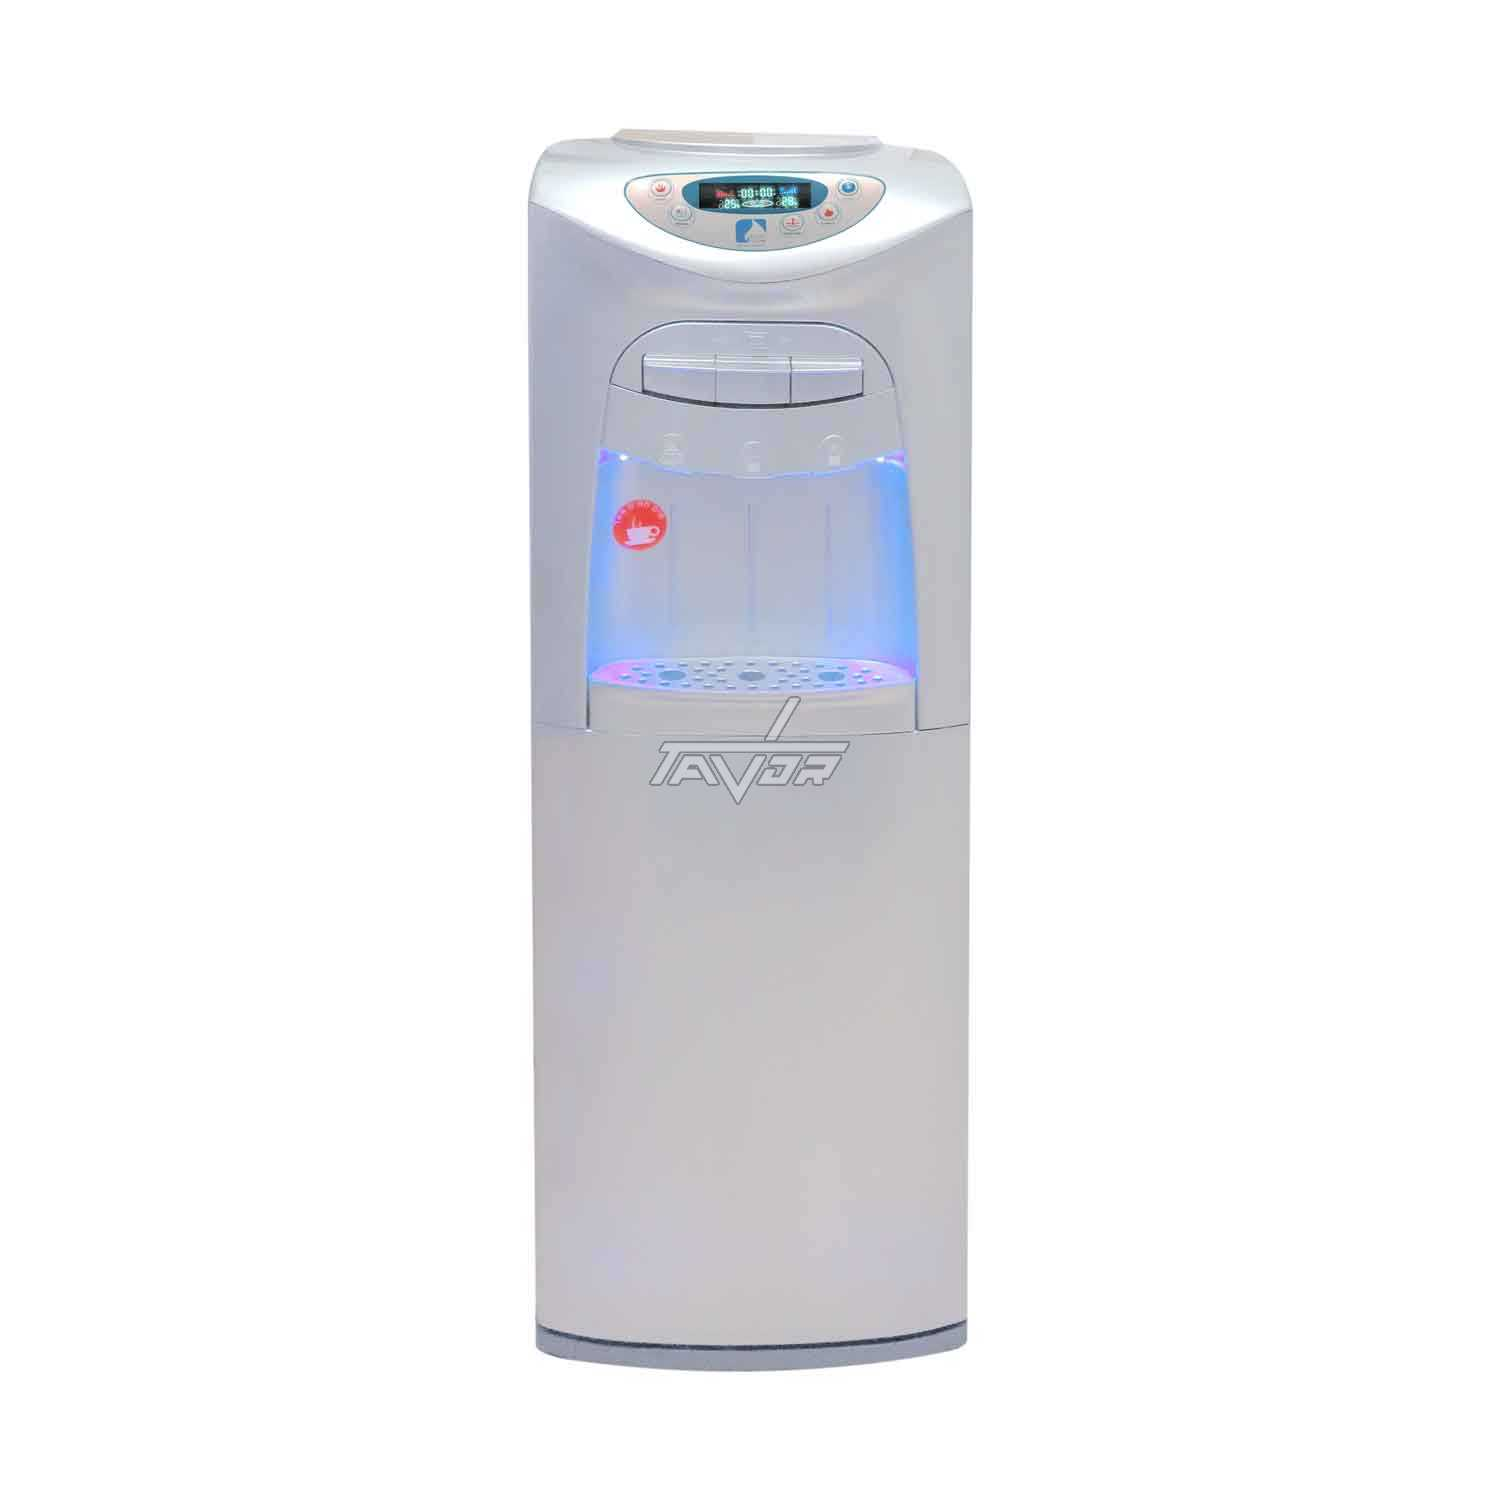 FLOOR STANDING WATER DISPENSER DIGITAL WITH 3 TAPS MODEL LC20-BL03NP WITH SILVER BODY AND SILVER FRONT PANEL WITHOUT A REFRIGERATOR